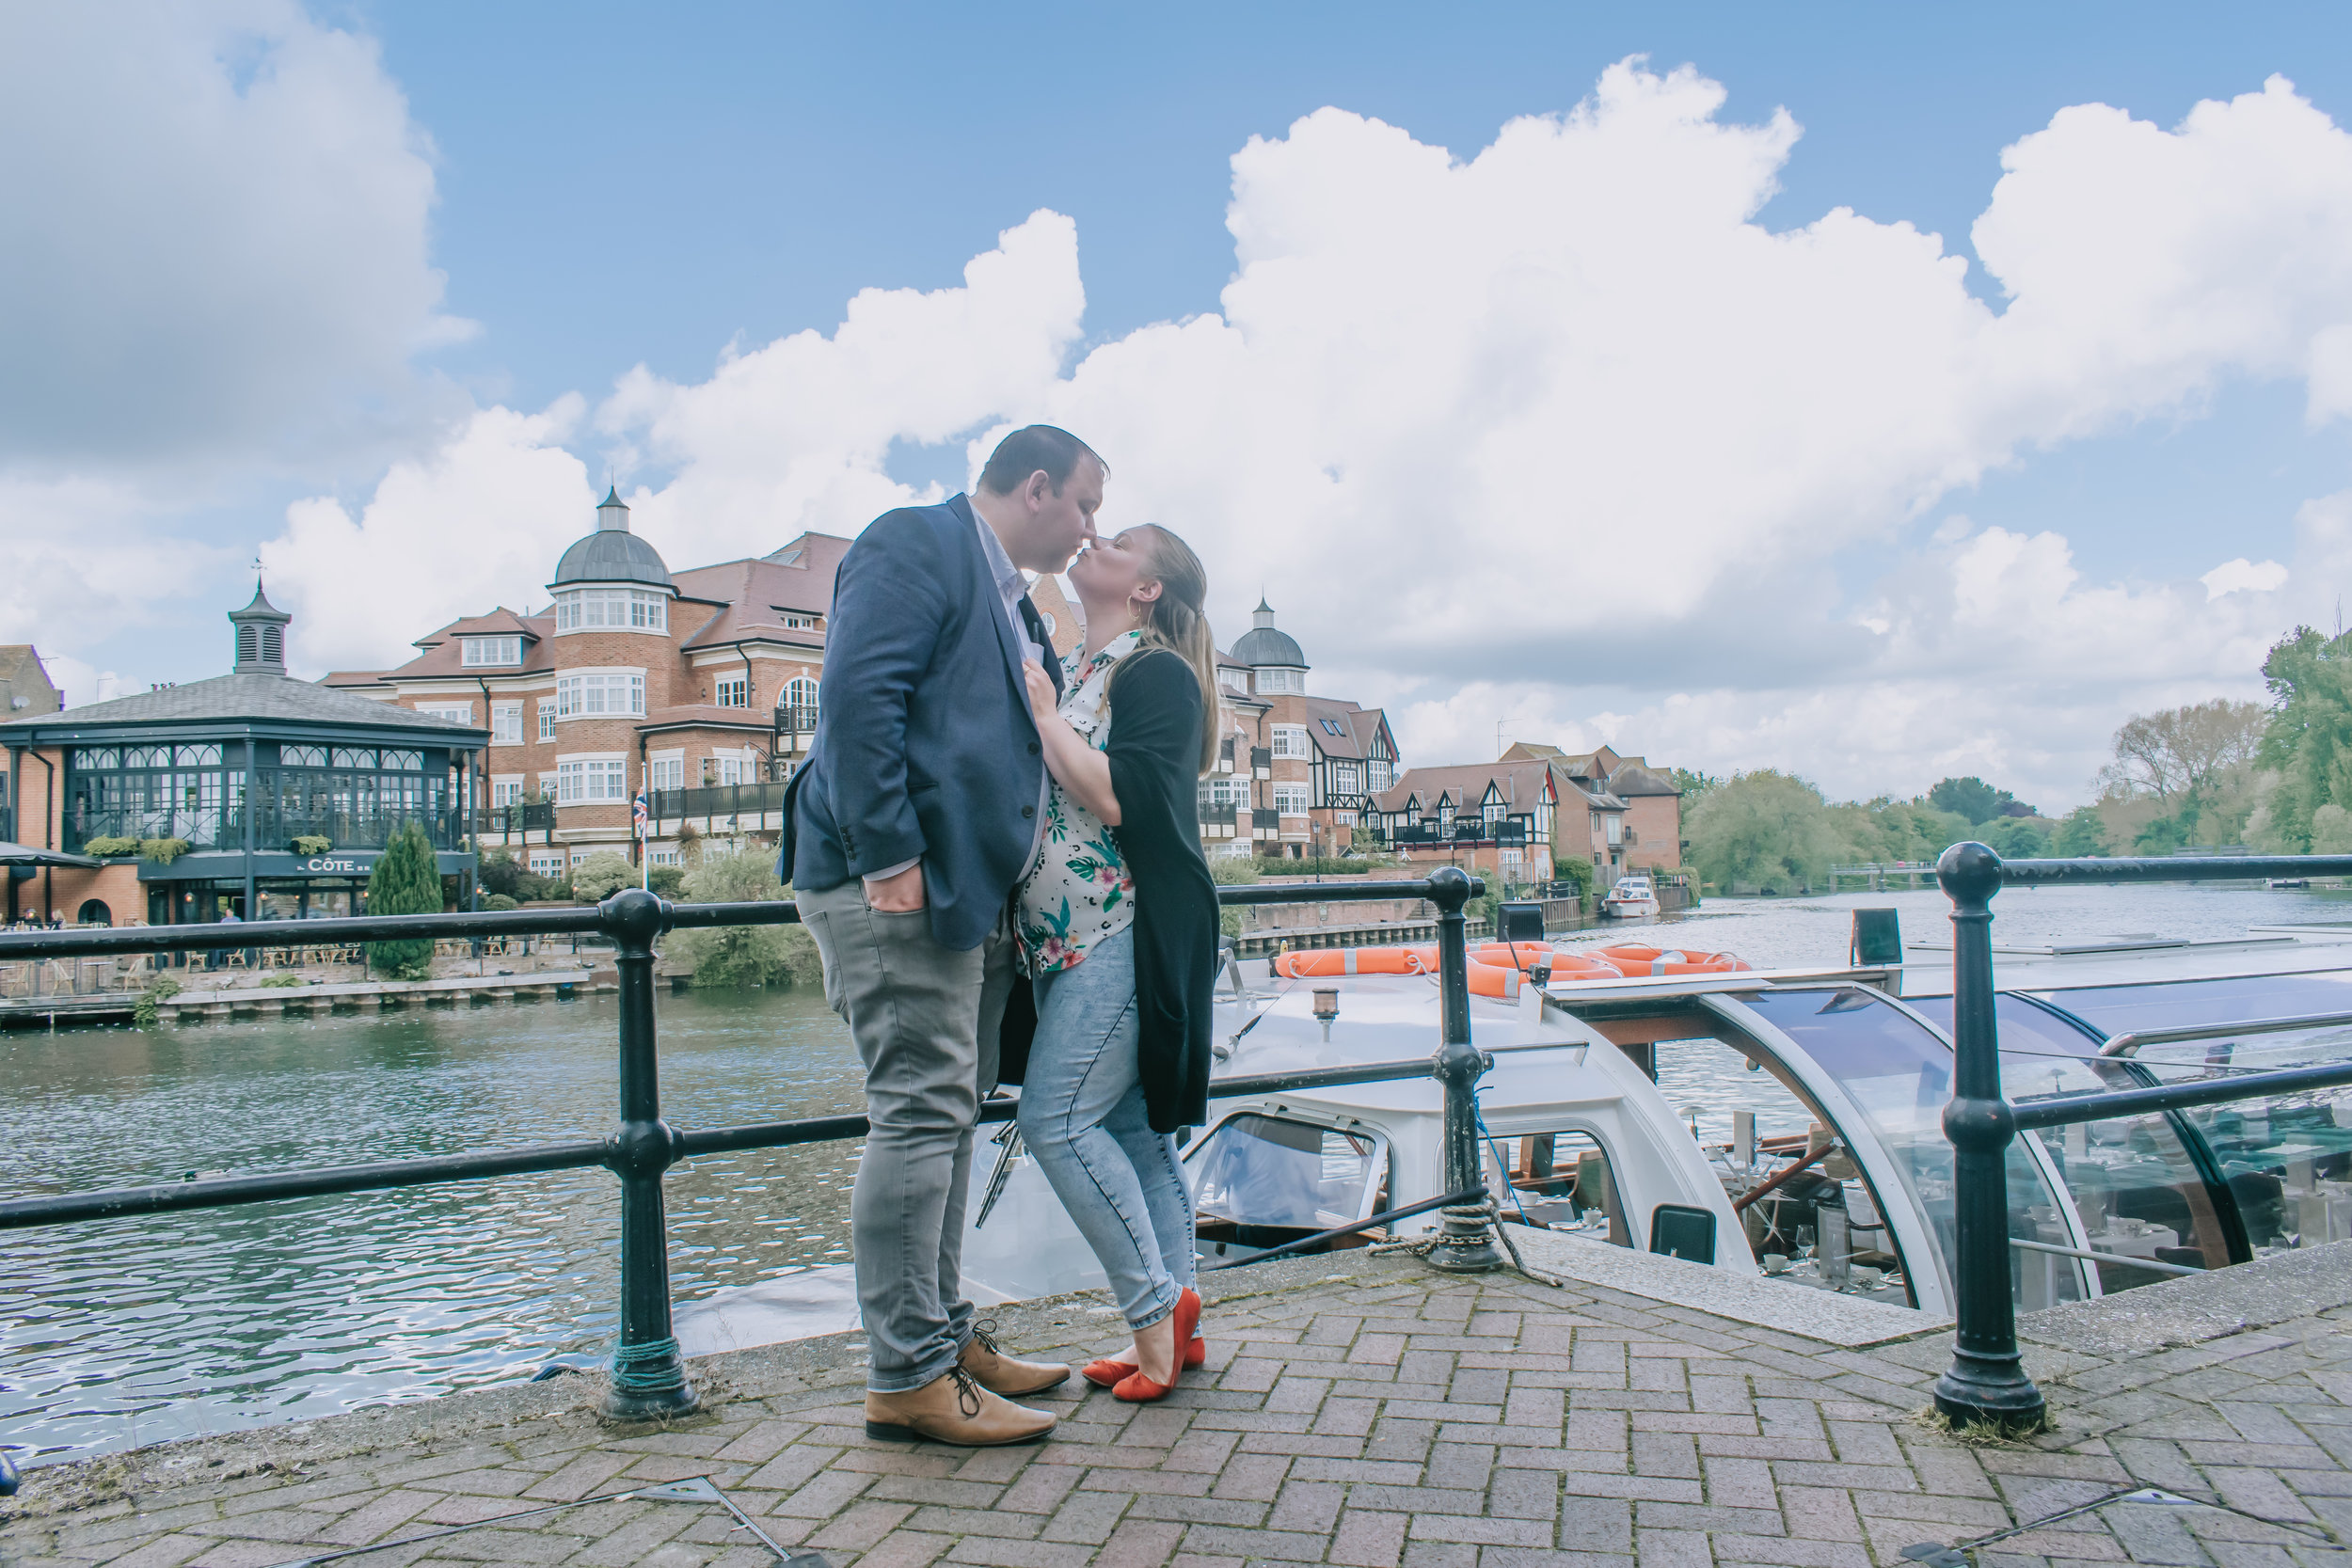 Bateaux Windsor lunch river cruise on the Thames